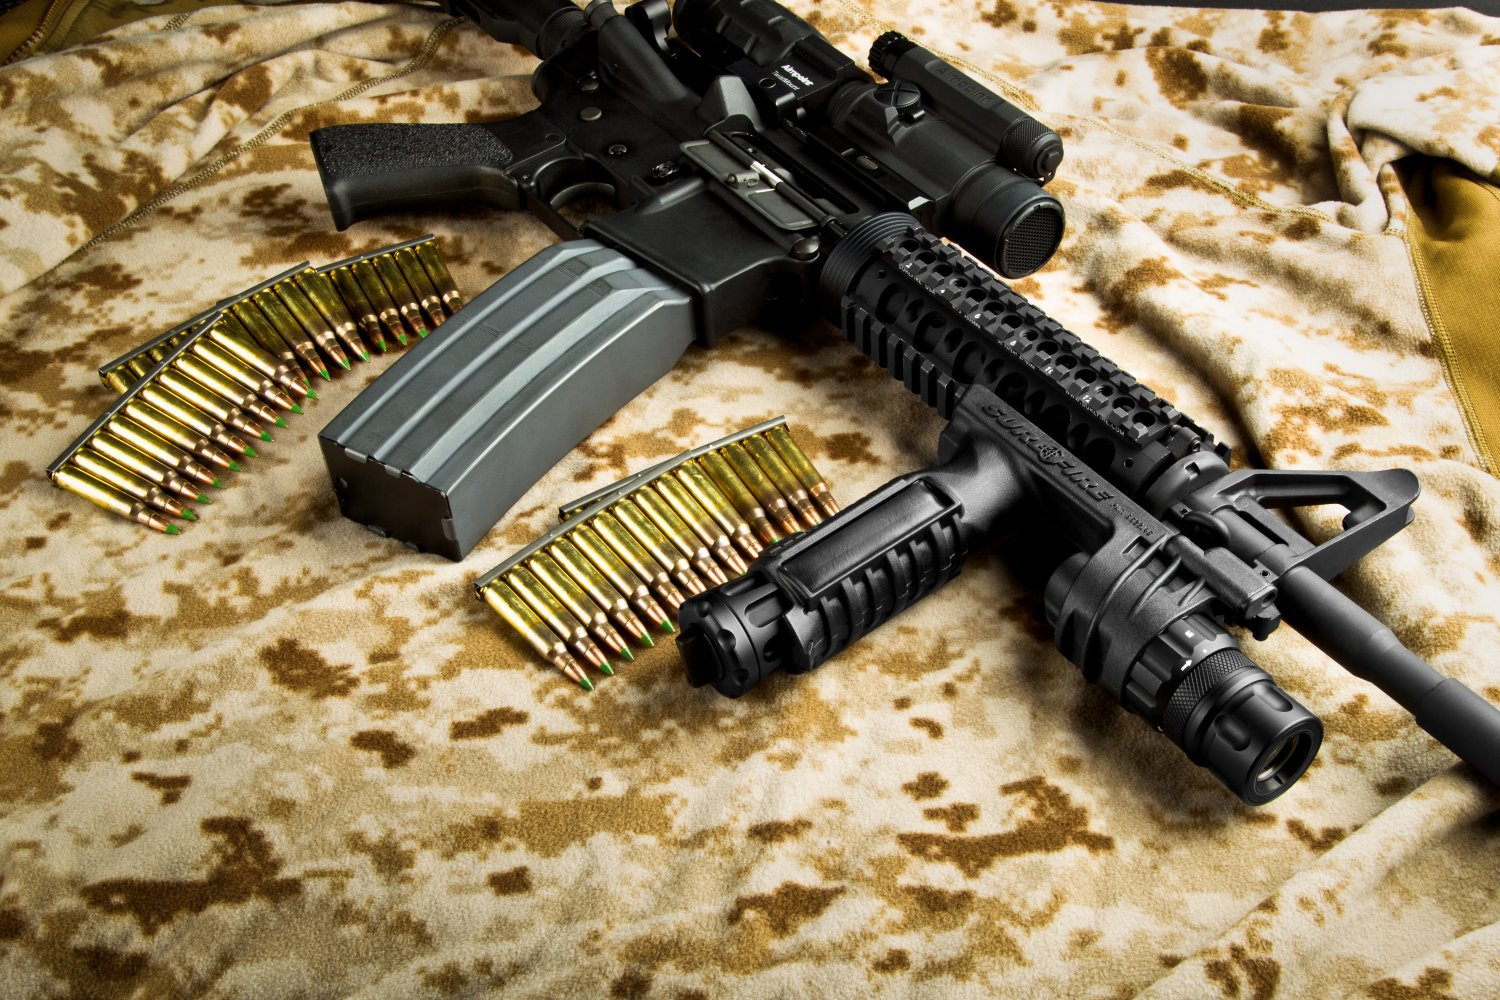 "DR Exclusive!: SureFire MAG5-60 and MAG5-100 High Capacity Magazine (HCM) ""Quad-Stack"" AR Rifle Magazines: 60-Round/Shot and 100-Round/Shot AR (AR-15/M16) 5.56mm NATO Box Magazines for Significantly-Increased Firepower during Infantry Combat and Tactical Engagements of All Sorts"